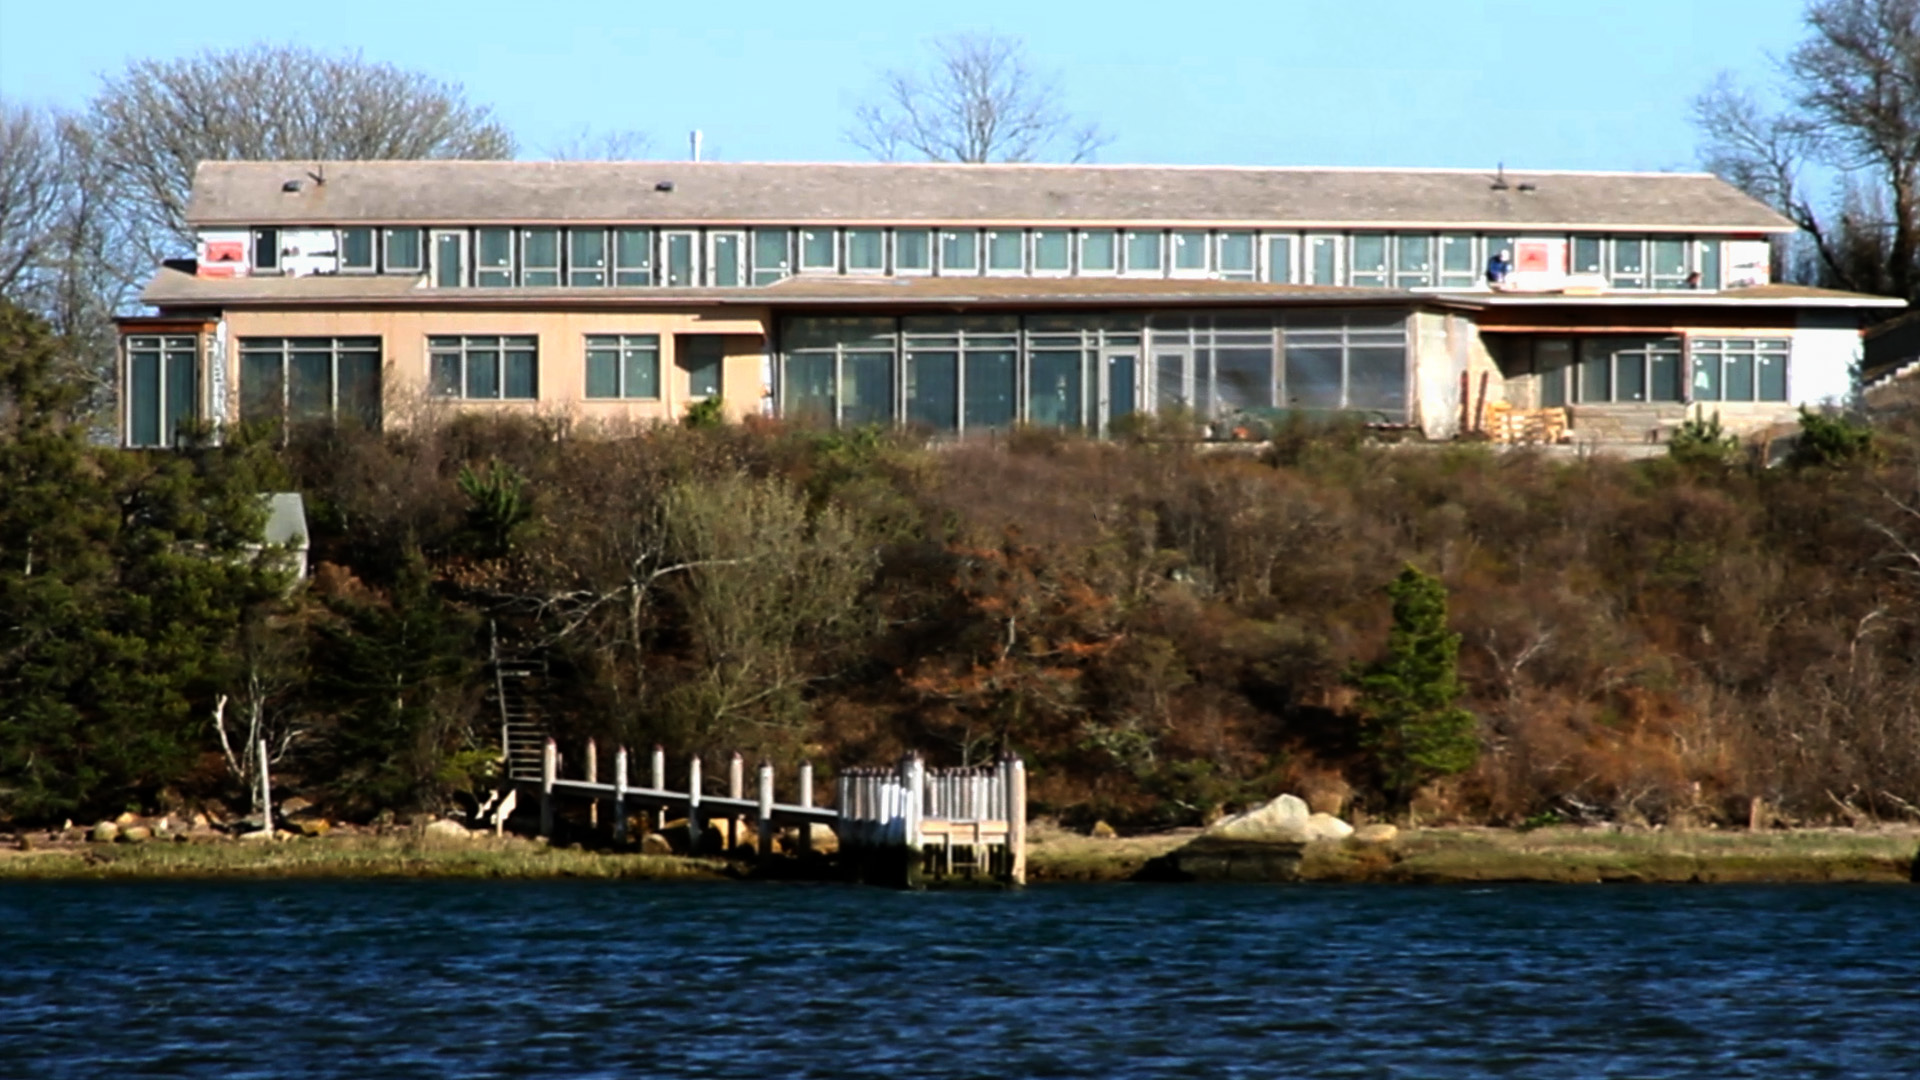 OBH_publicity_Marthas_Vineyard_Clam_Cove_Zoia_House After.jpg